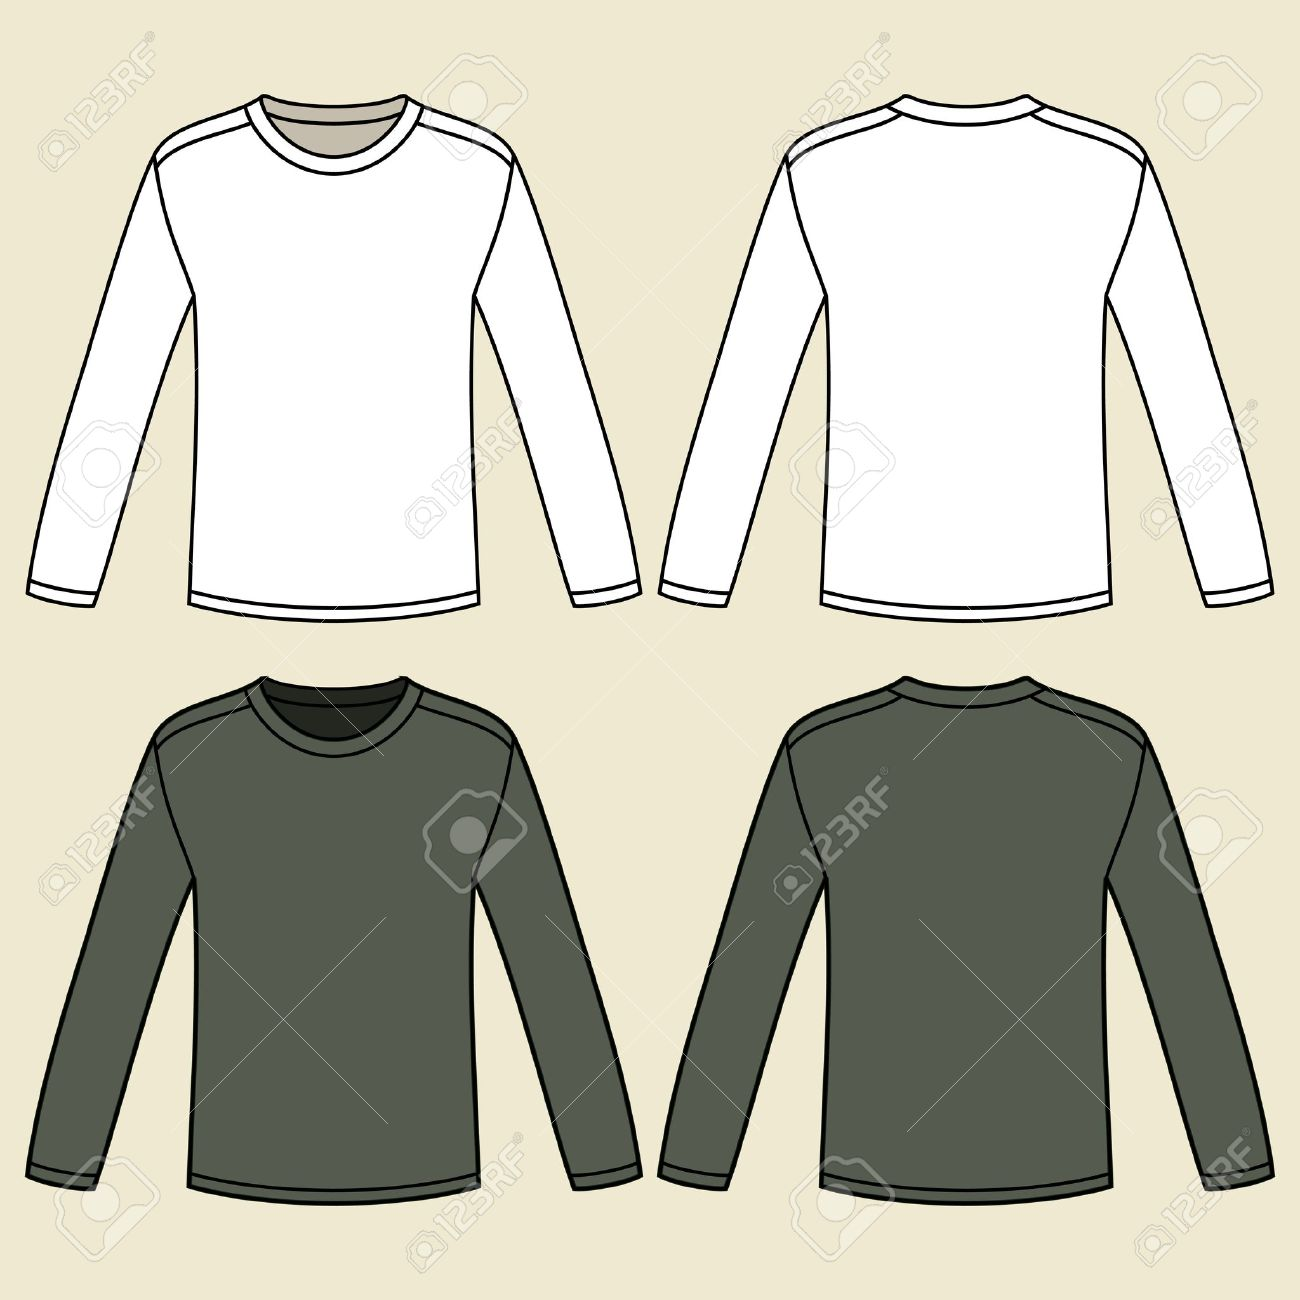 Blank Long-sleeved T-shirts Template Royalty Free Cliparts, Vectors ...